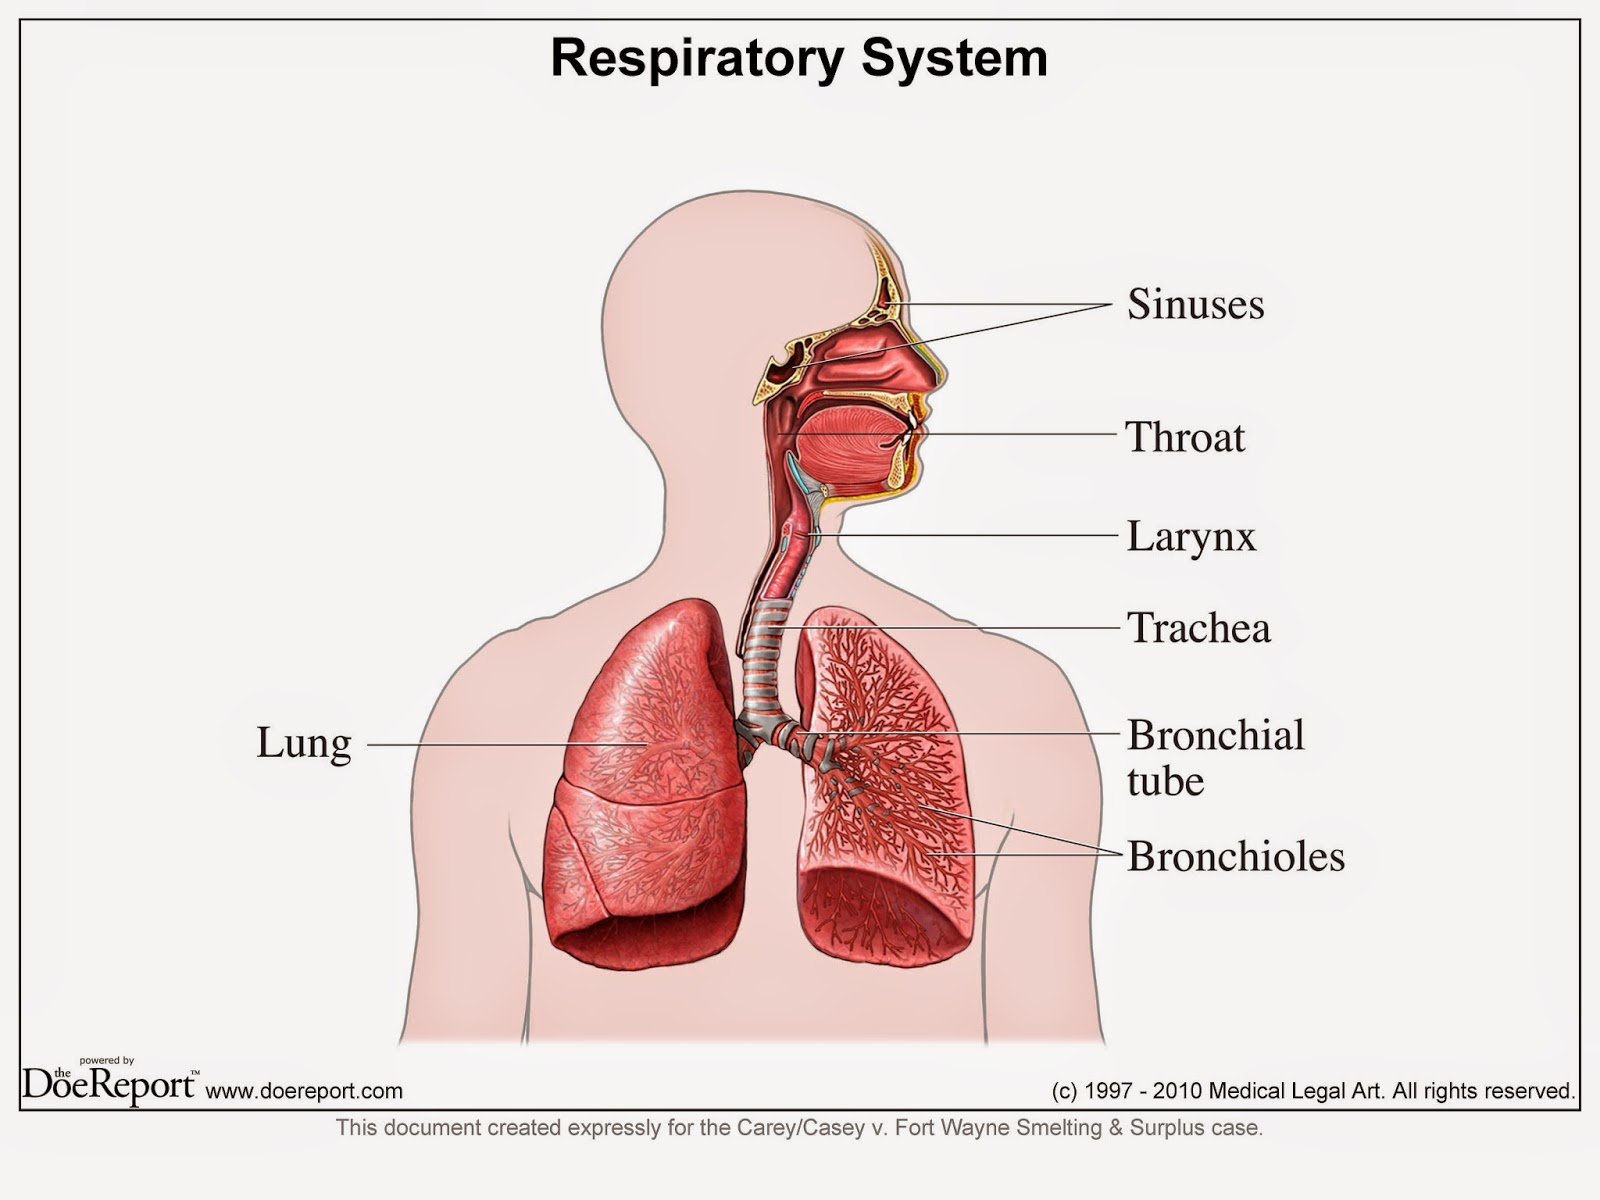 hight resolution of the organs include the sinuses throat larynx trachea bronchial tube lungs nose and bronchioles without these breathing would become extremely